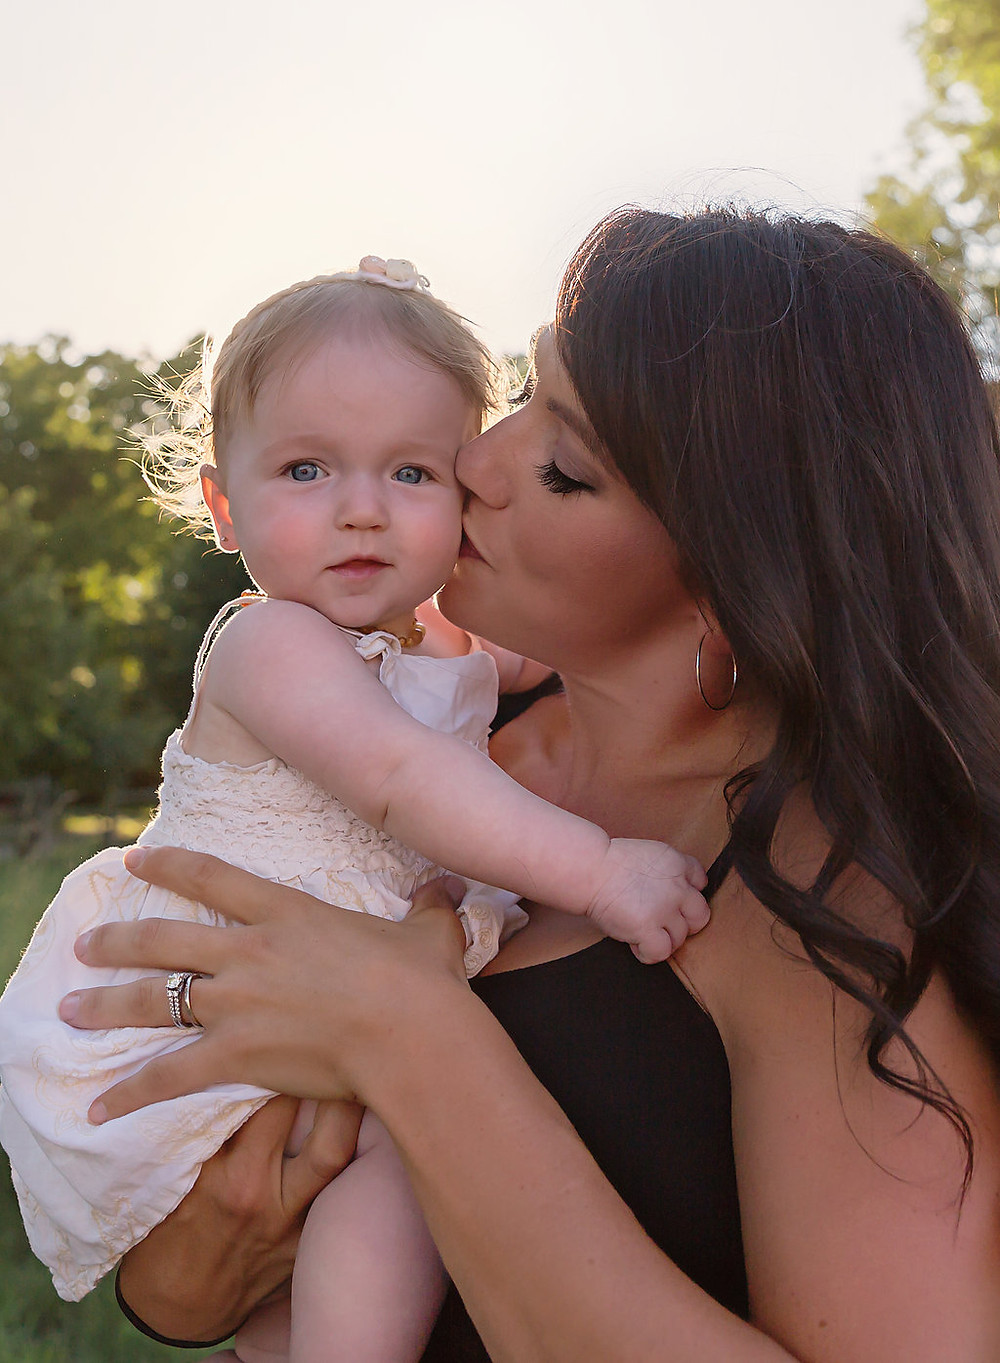 mommy kissing baby